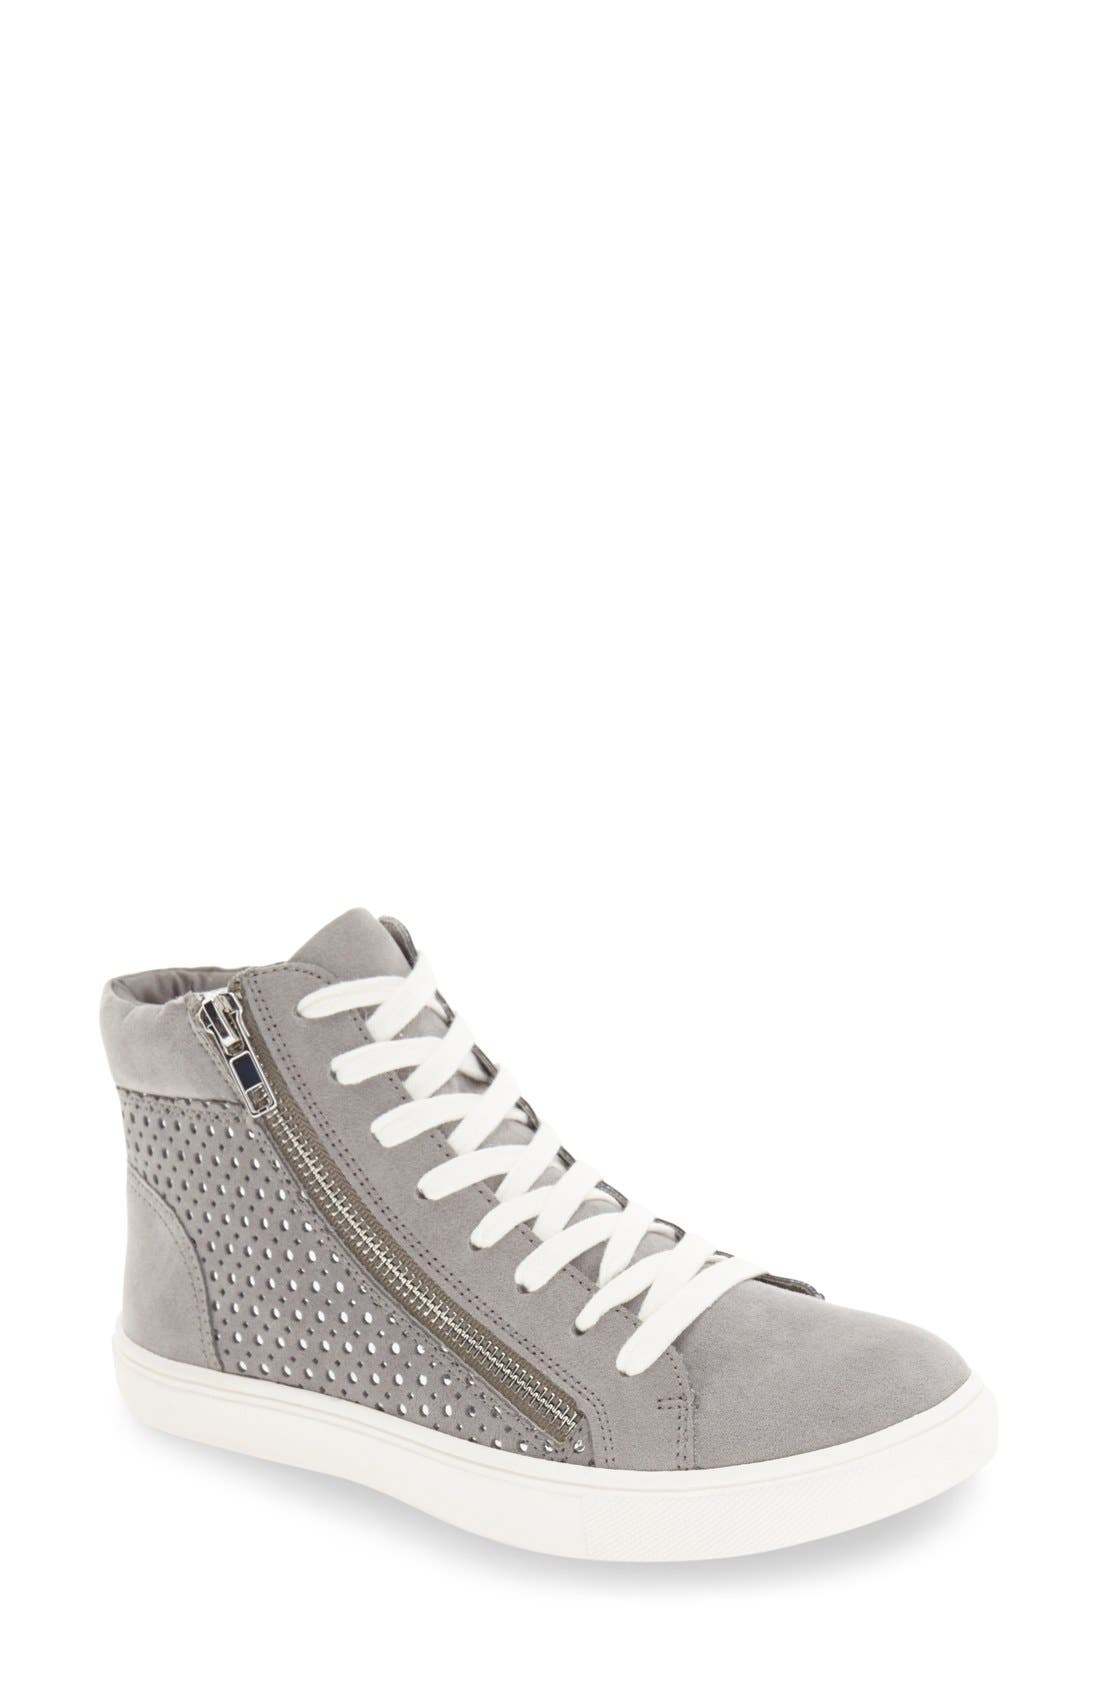 Alternate Image 1 Selected - Steve Madden 'Elyka' Laser Cut High Top Sneaker (Women)